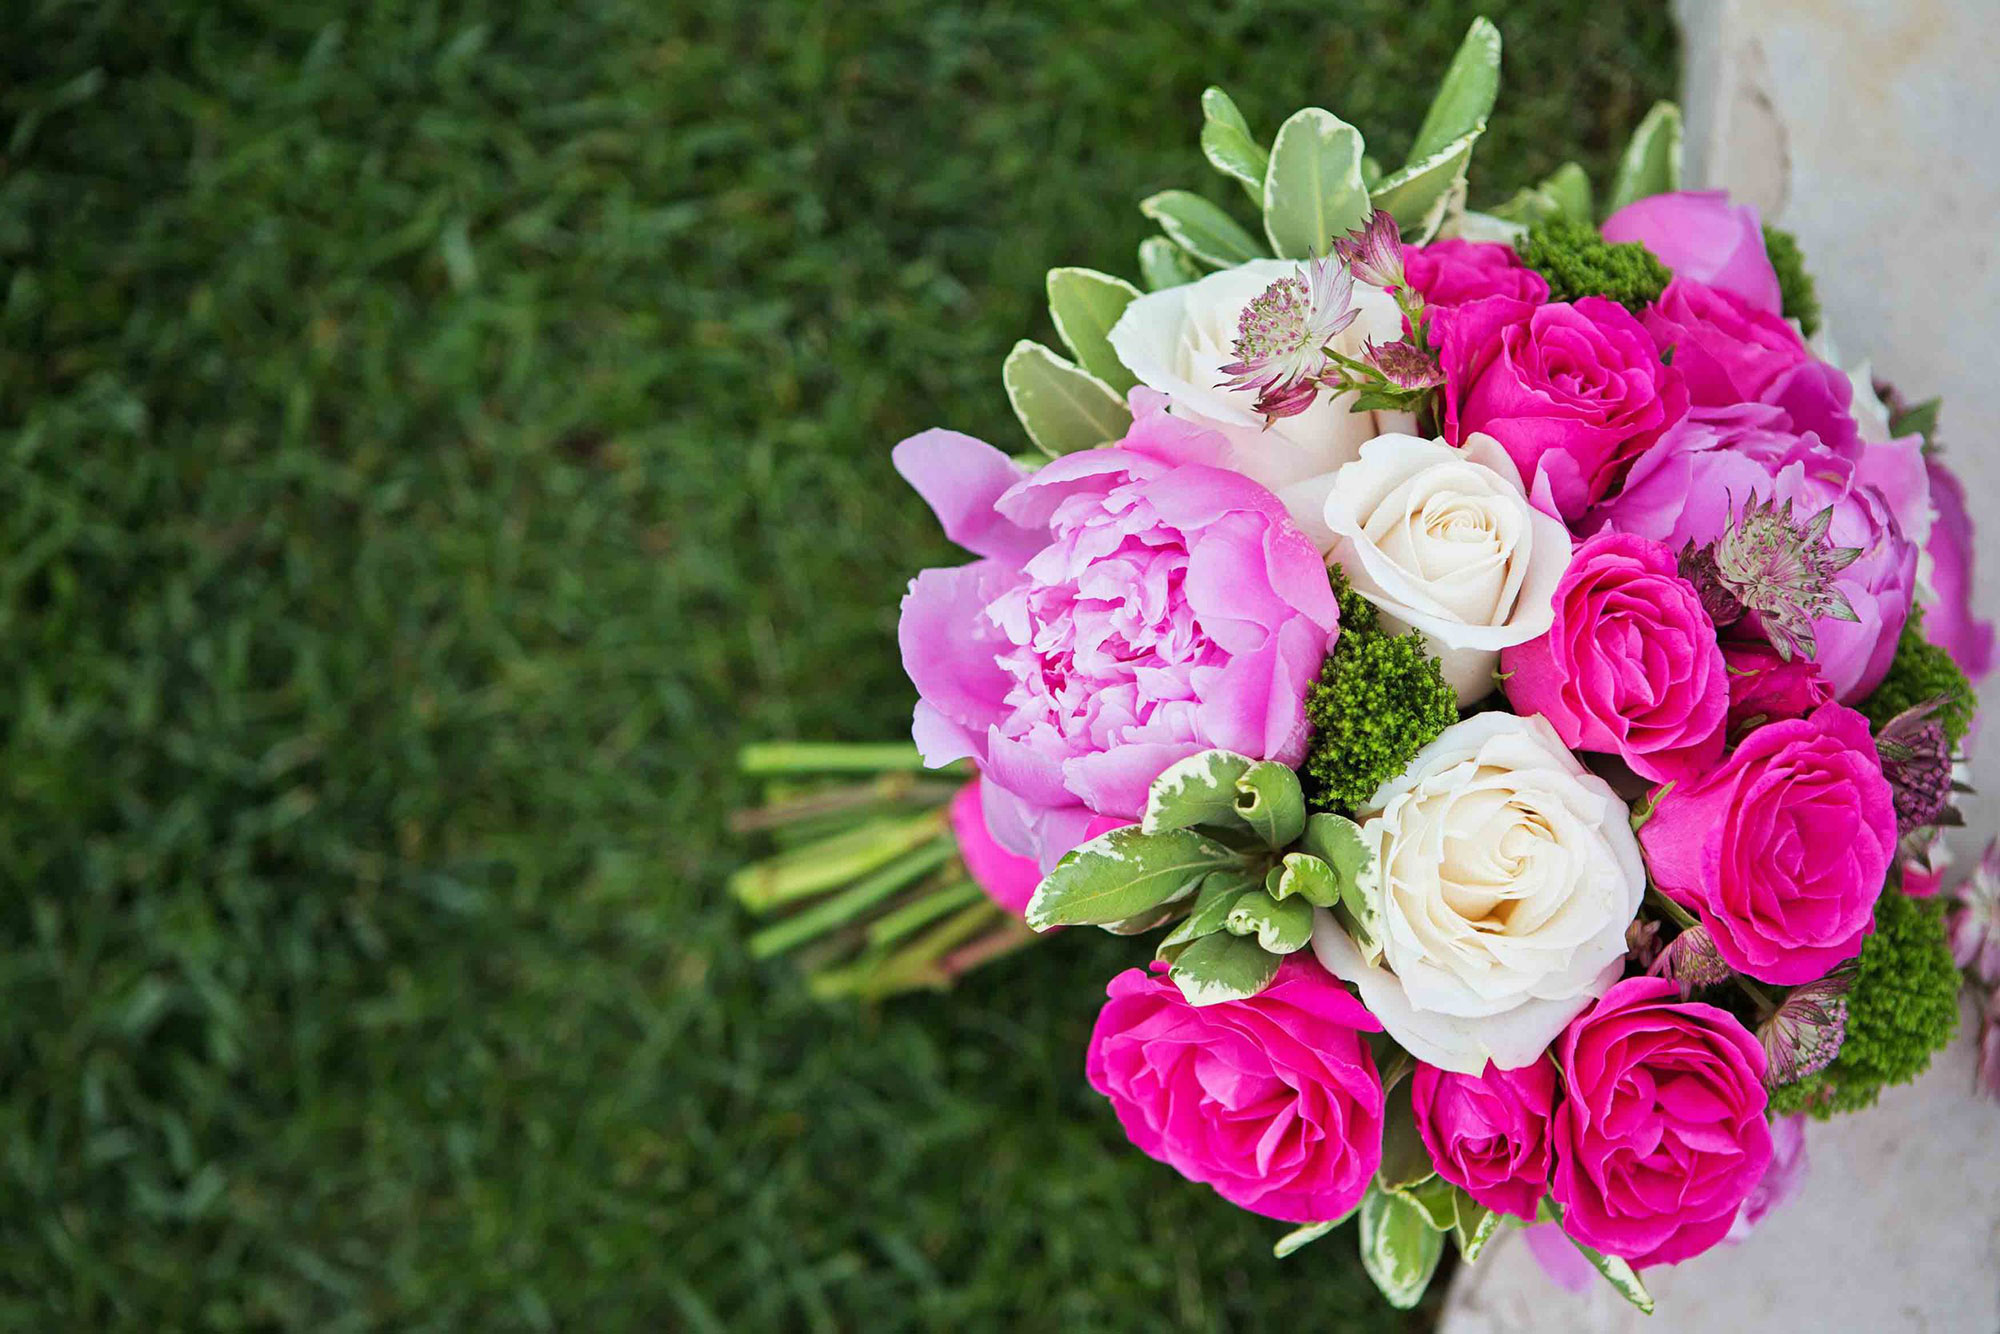 Wine-Country-Floral-Wedding-Florals-Vineyard-Bride-Photo-By-Jessica-Little-Photography-014.jpg